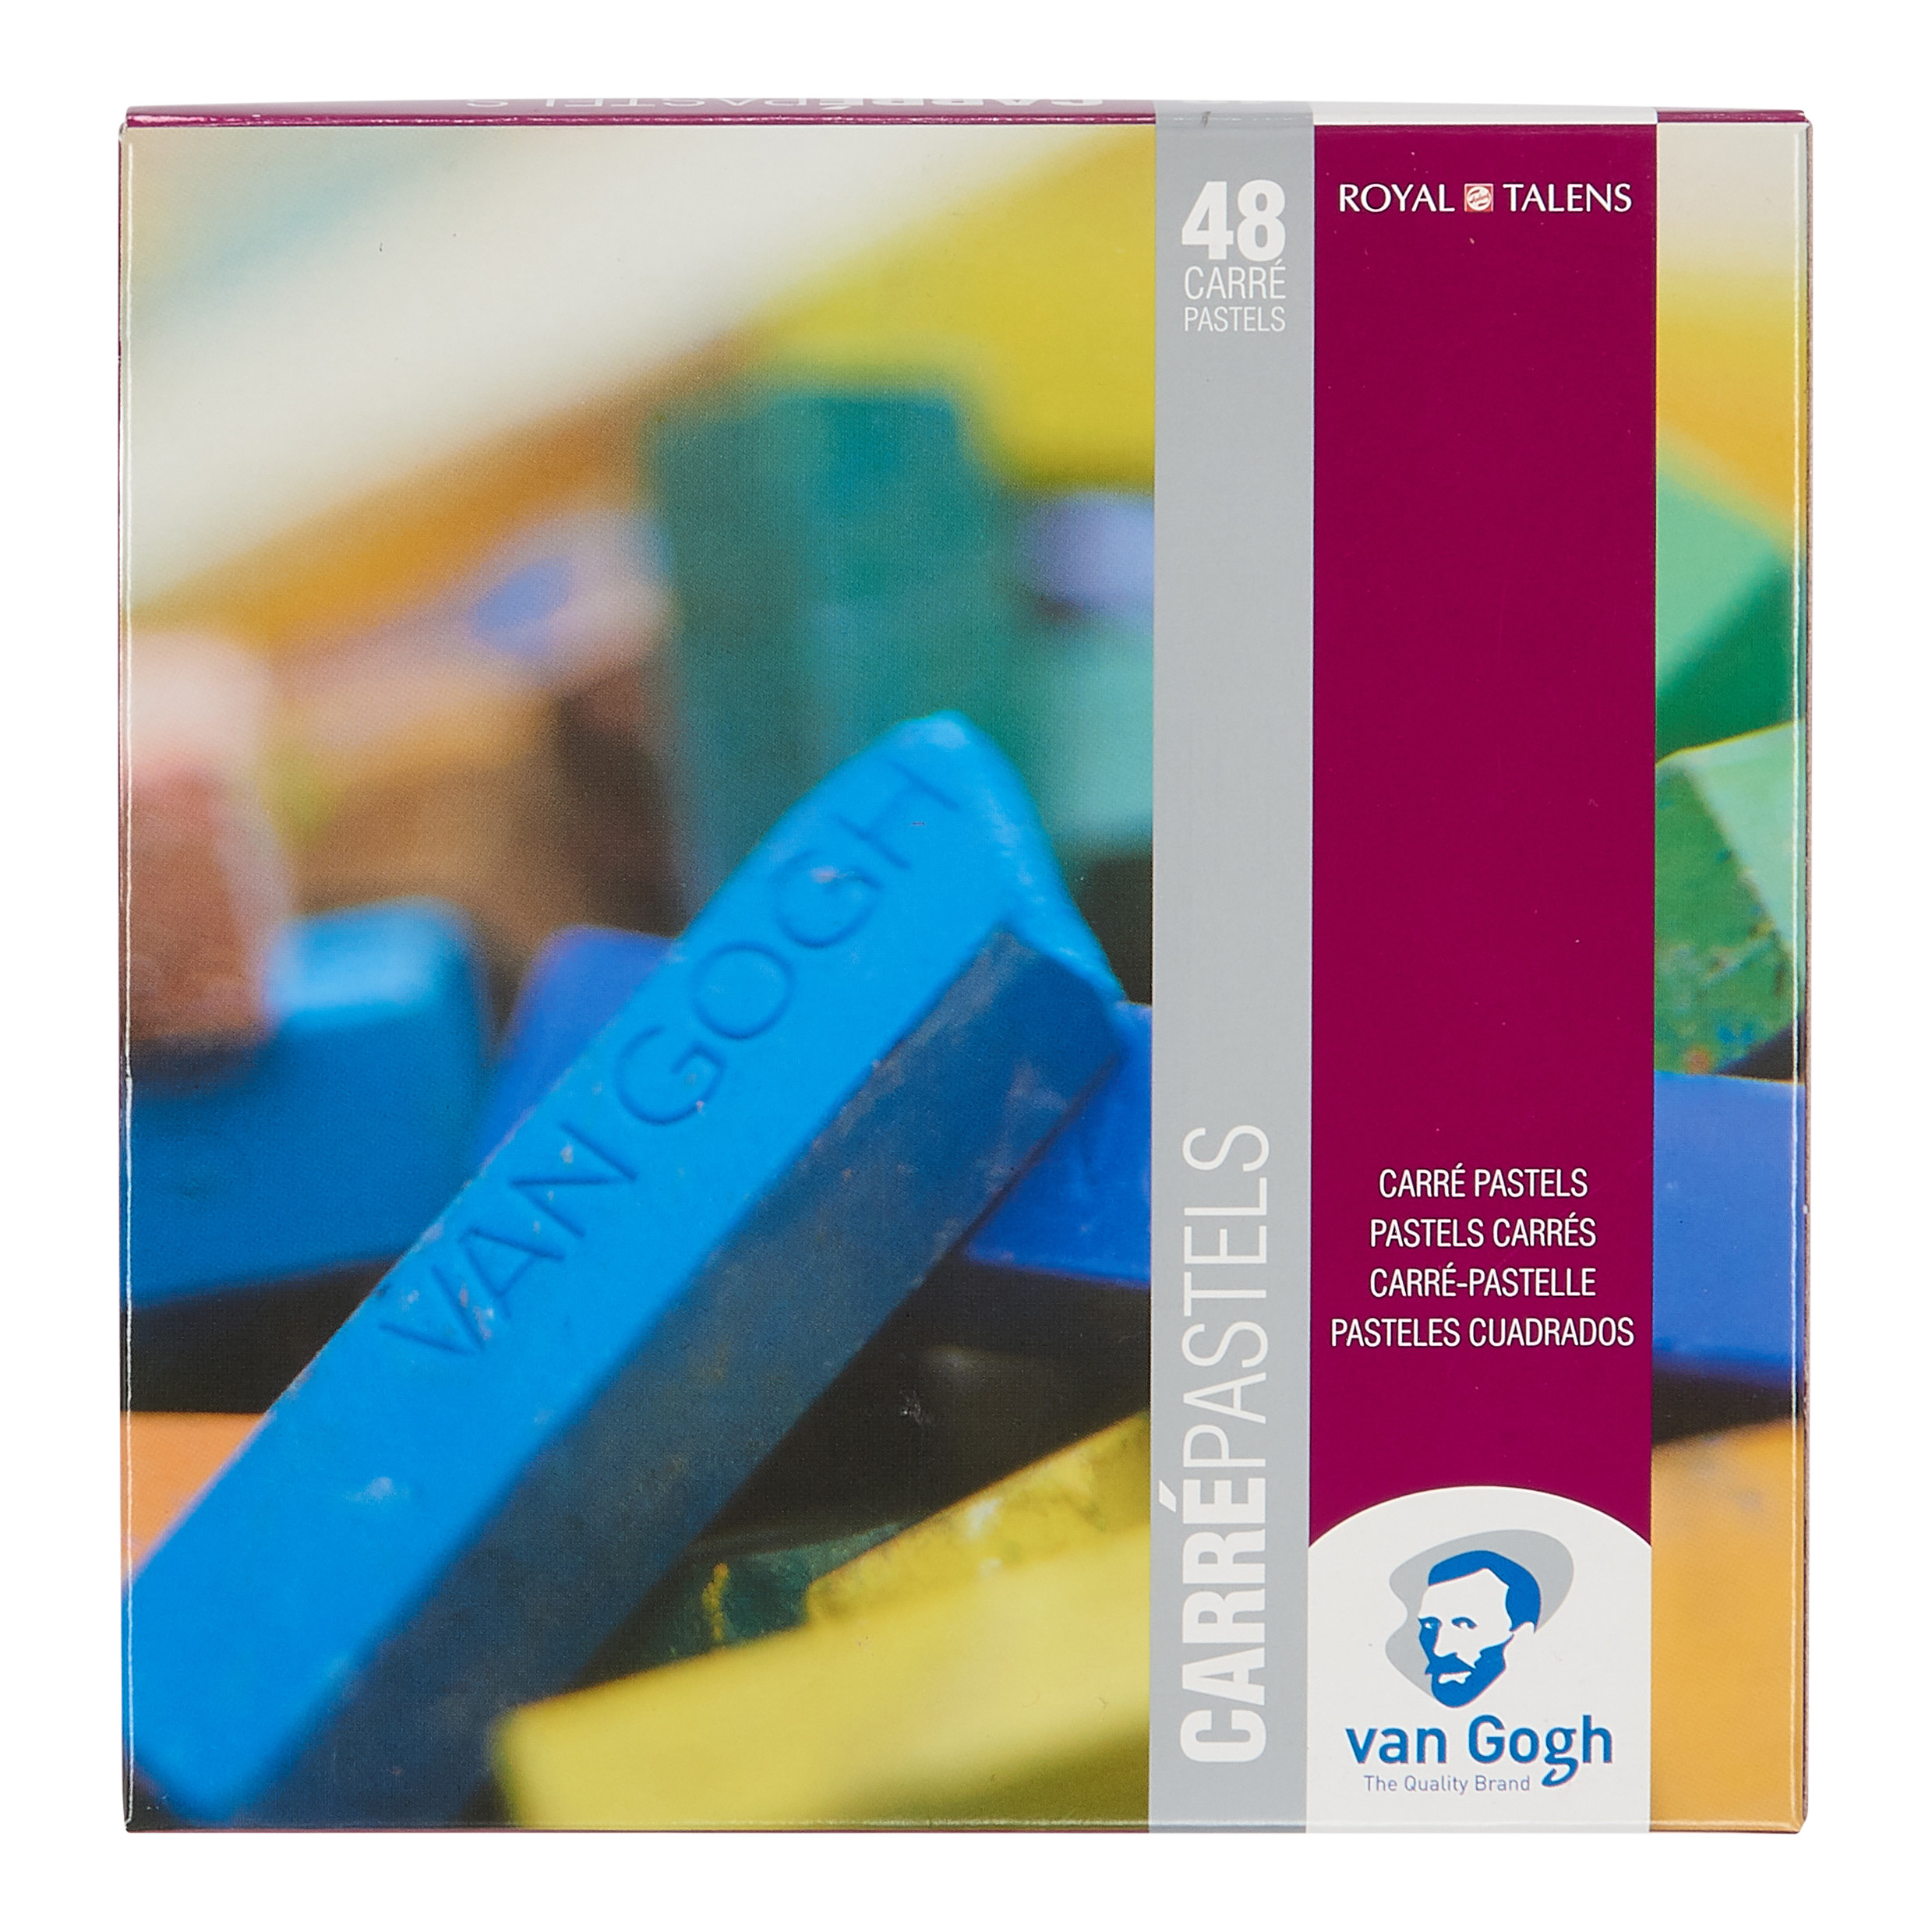 Van Gogh Carr? Pastels Advanced Set with 48 Colours